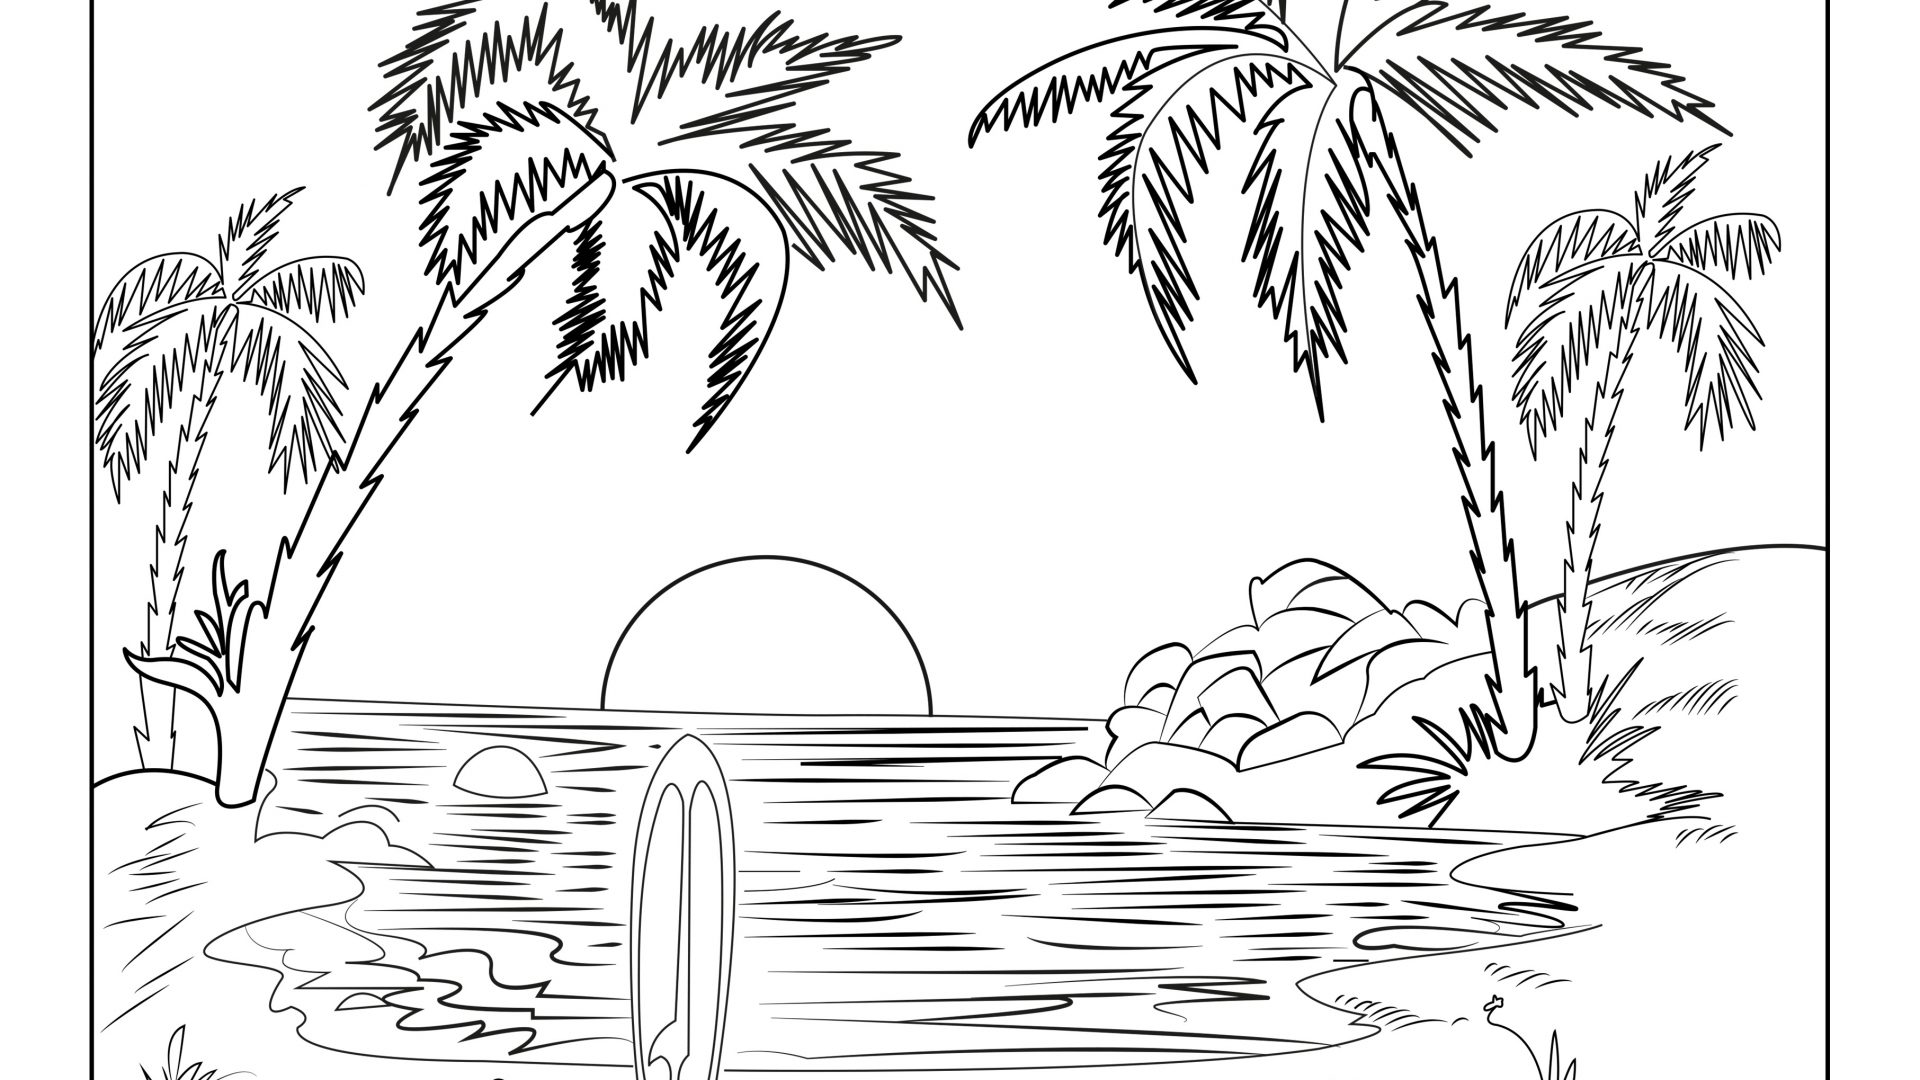 coloring nature images free coloring pages of nature drawing to color nature images coloring nature